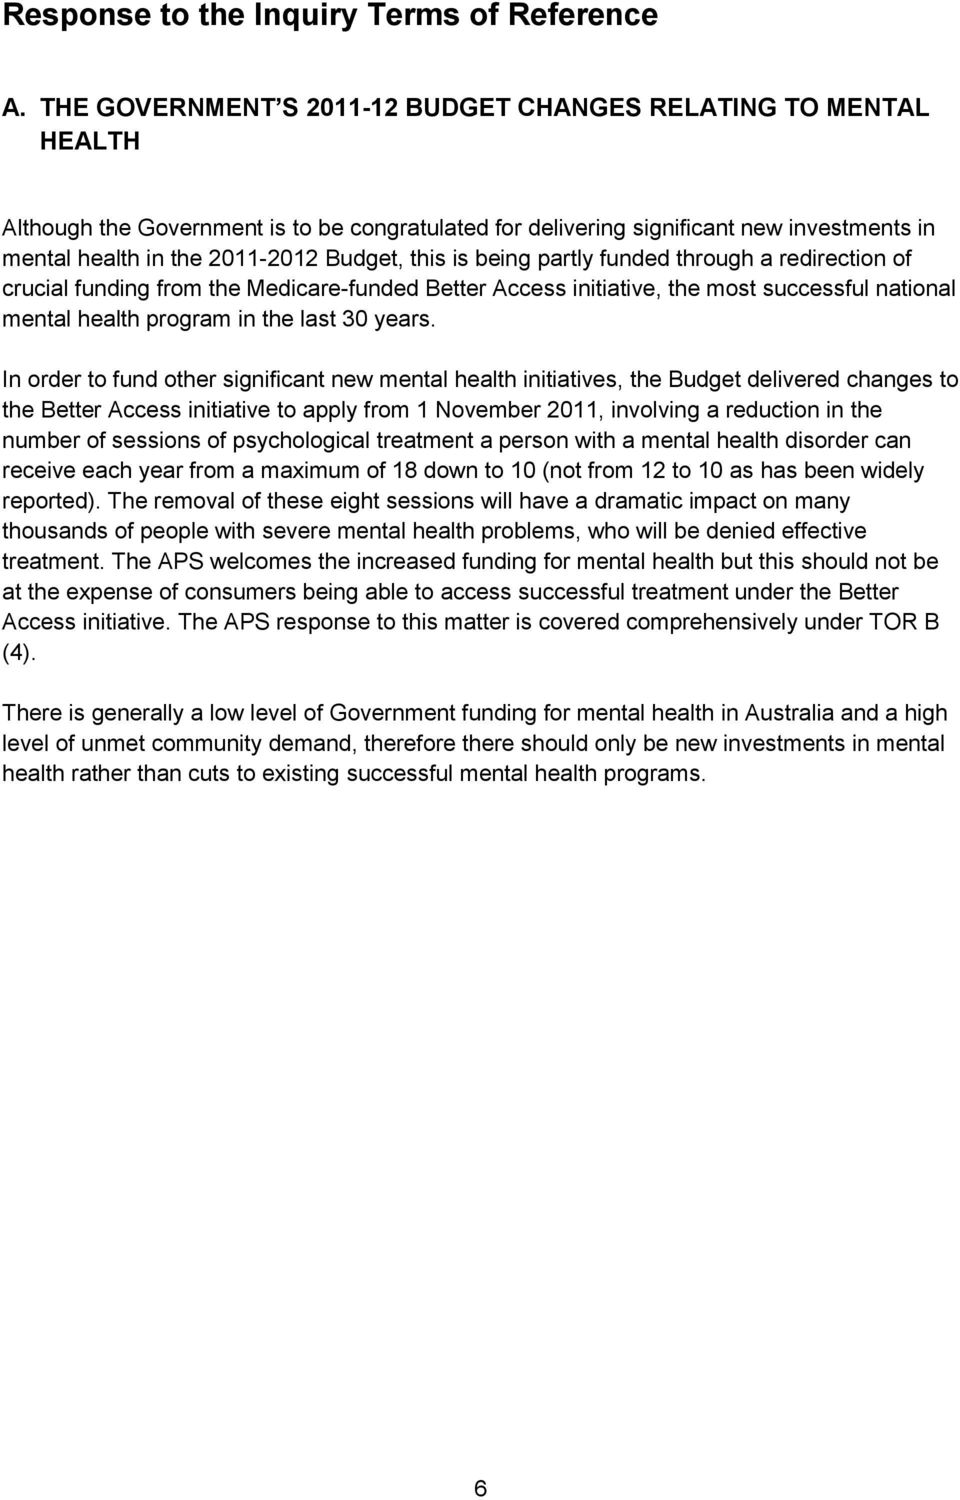 this is being partly funded through a redirection of crucial funding from the Medicare-funded Better Access initiative, the most successful national mental health program in the last 30 years.